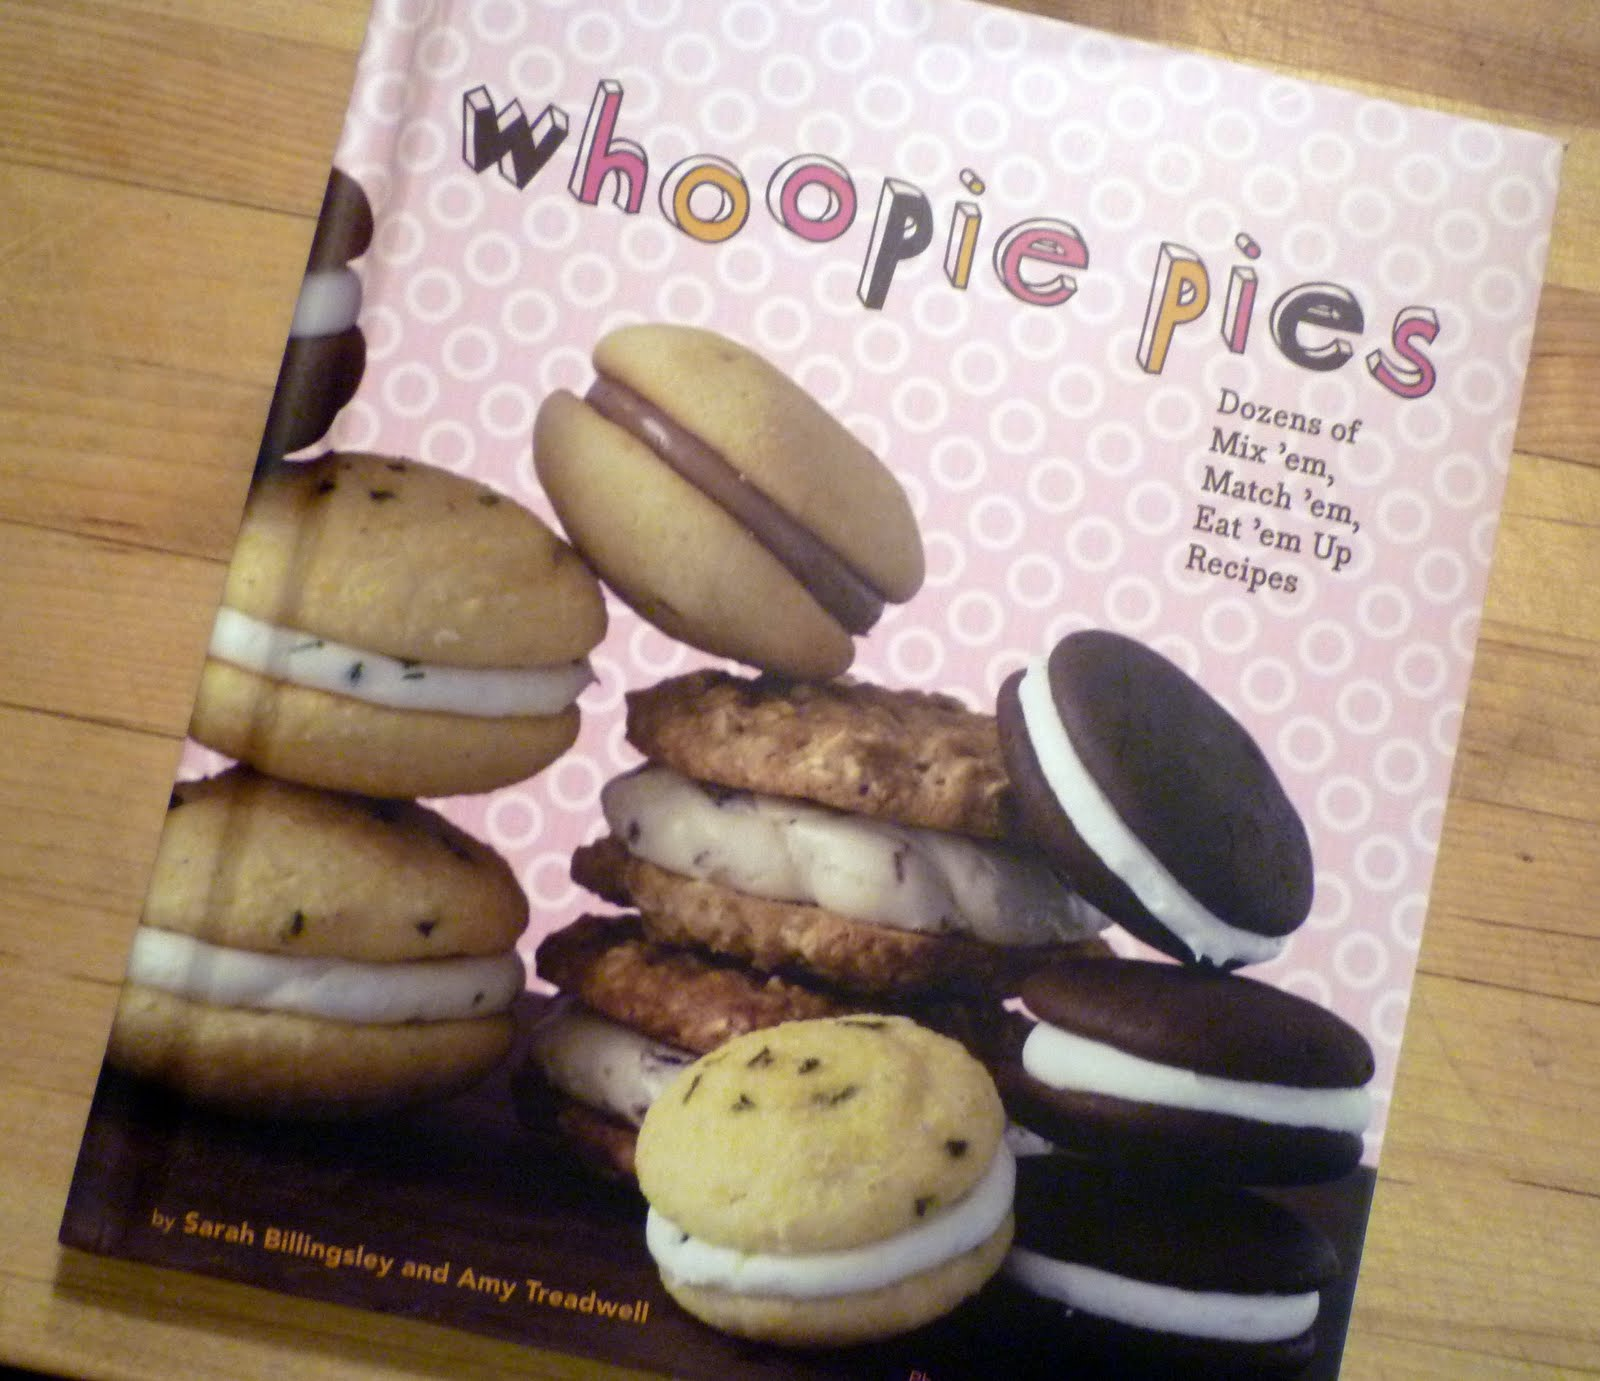 Well You See I Recently Received This Fun Whoopie Pies Cookbook For My Birthday And Wanted To Try One Of The Recipes In It